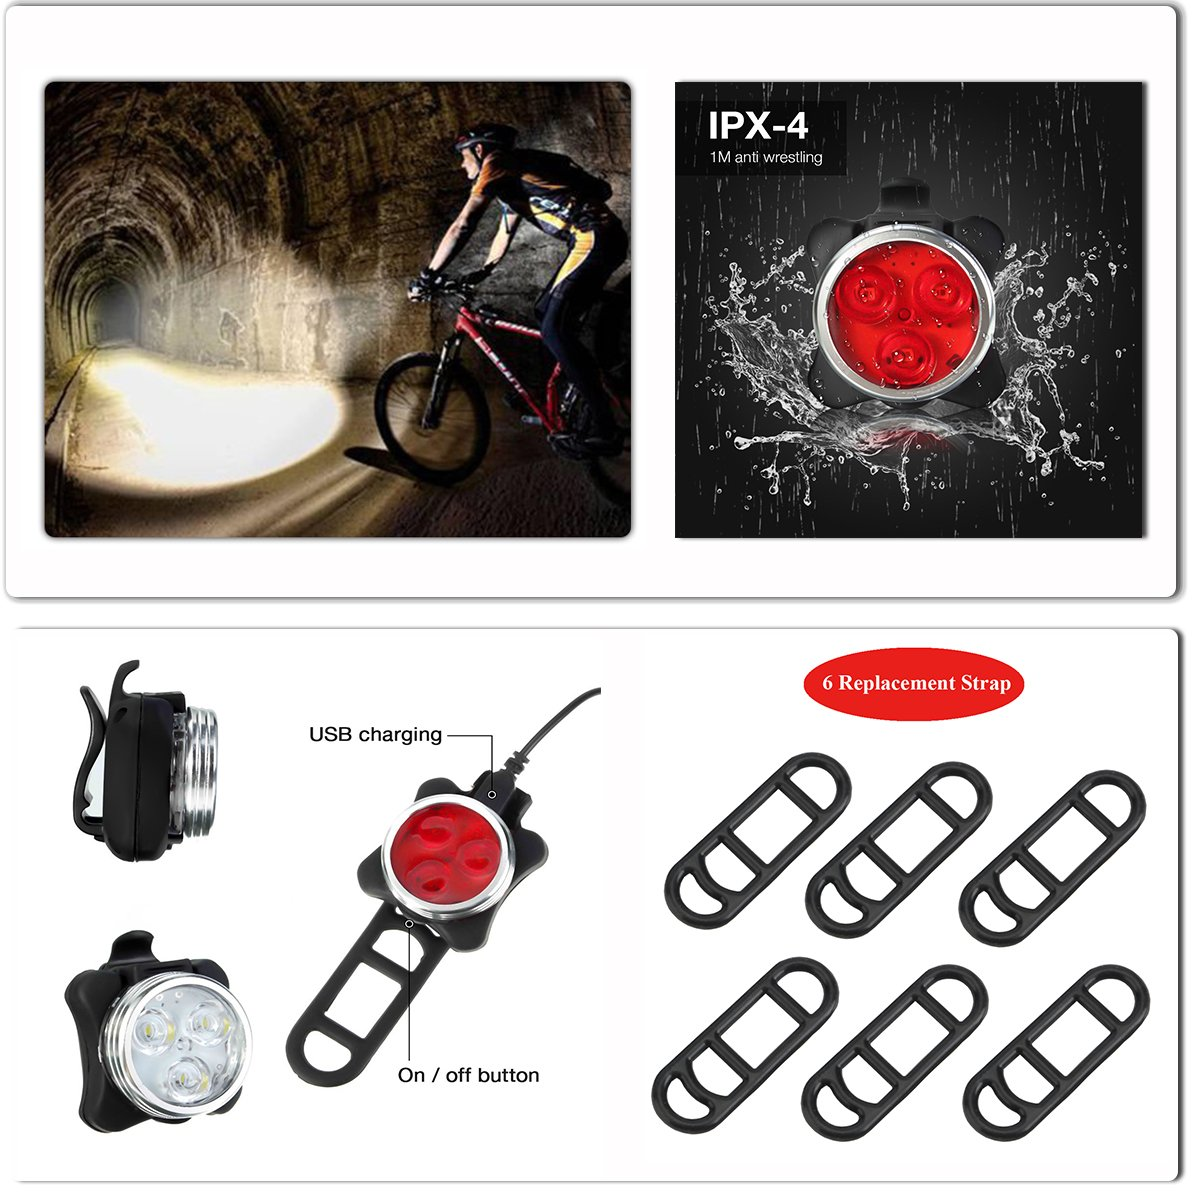 SOKLIT USB Rechargeable Bike Light Front and Rear Waterproof IPX4 Super Bright Bicycle LED Light Set 120 Lumen with 650mah Lithium Battery, 4 Light Mode Options, Including 6 Strap and 2 USB Cables by SOKLIT (Image #7)